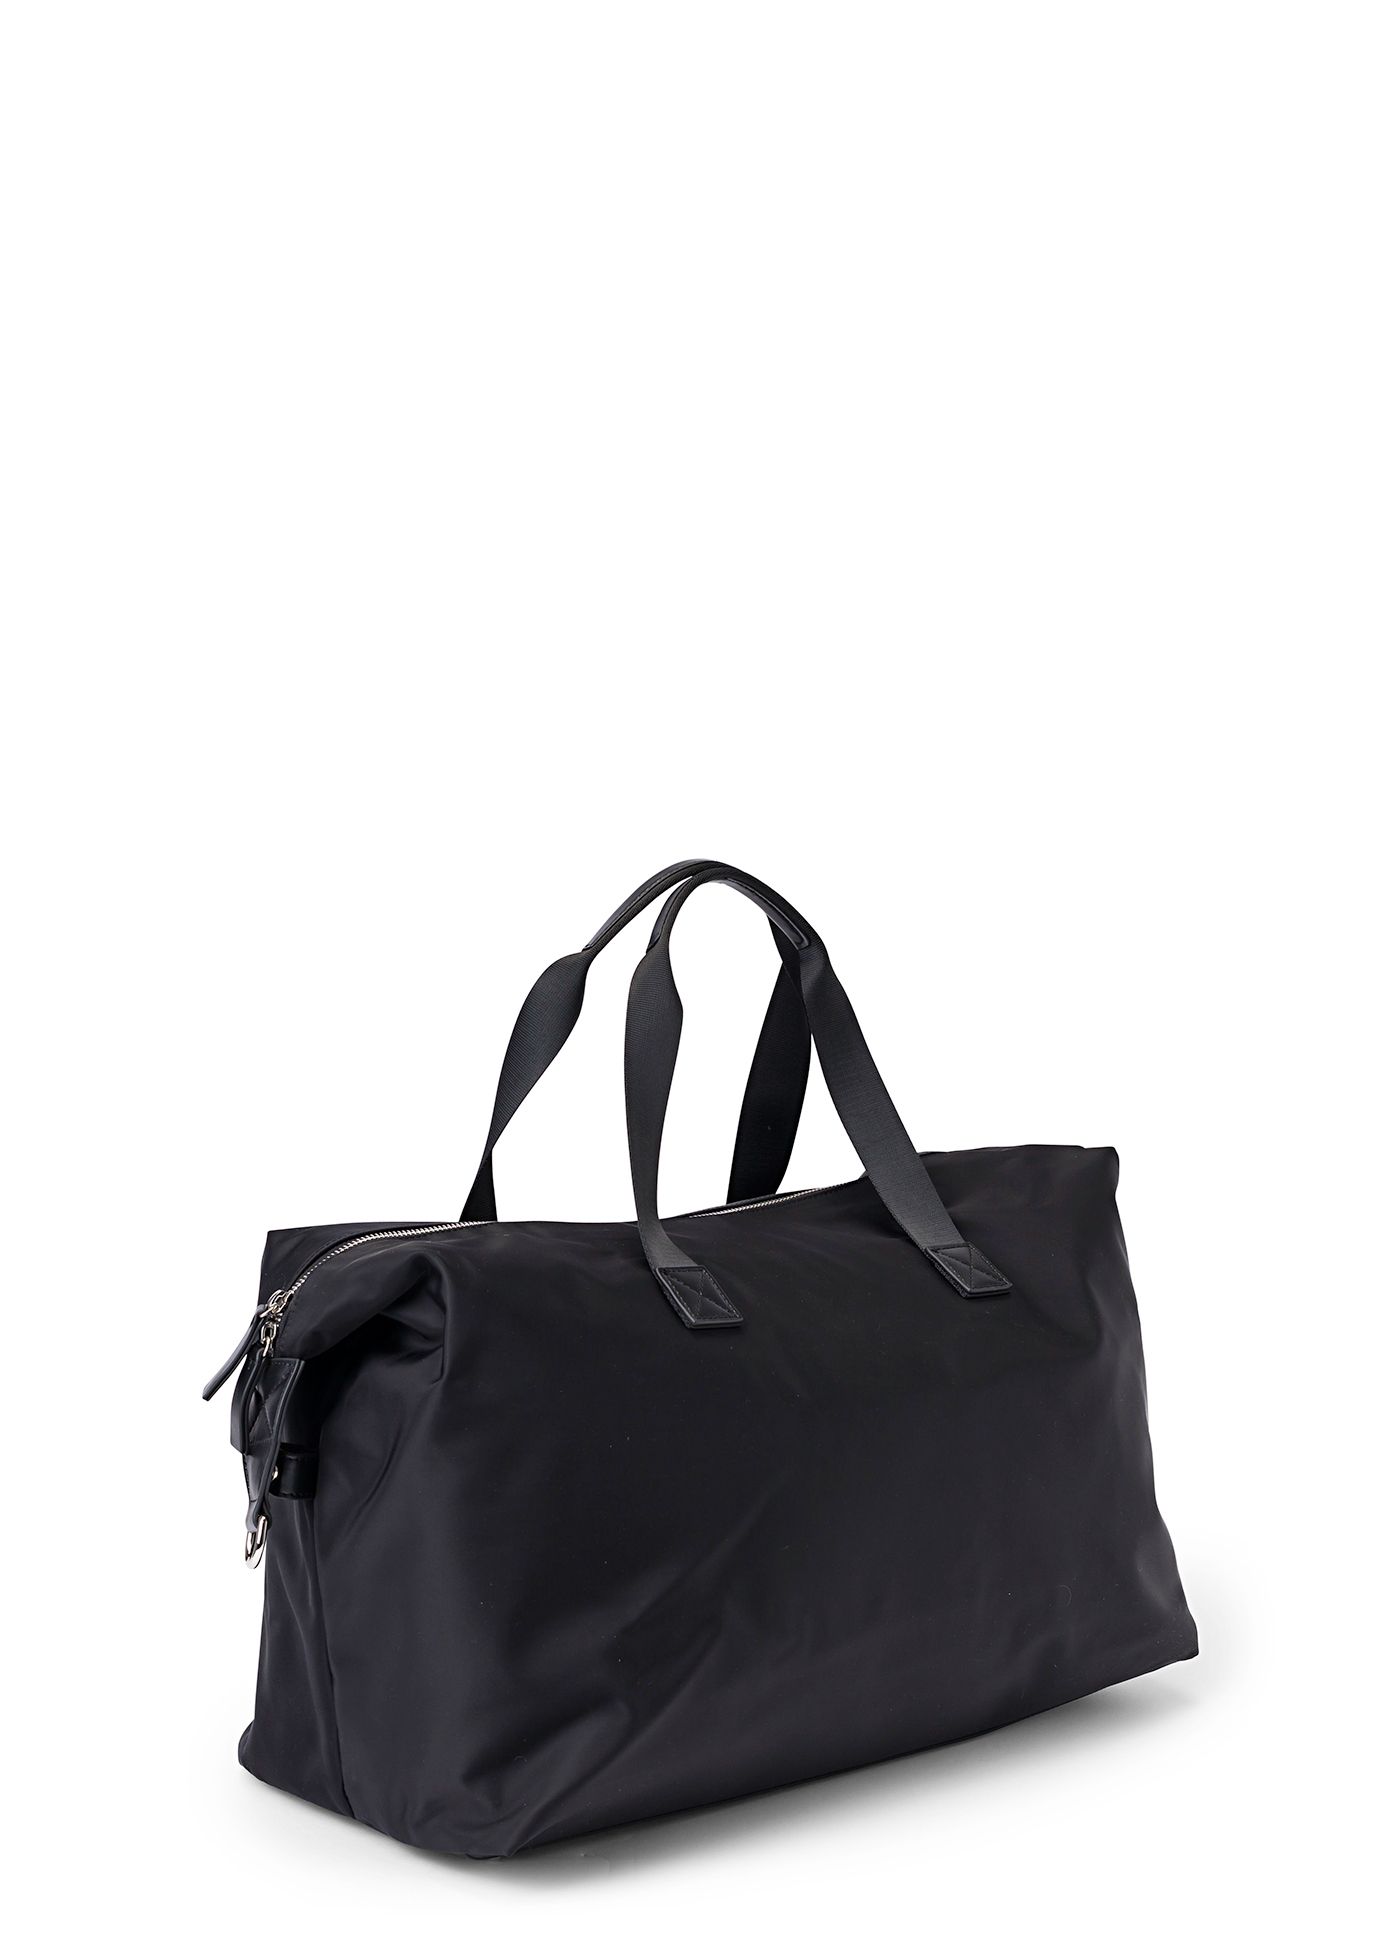 D2 ICON DUFFLE BAG image number 1